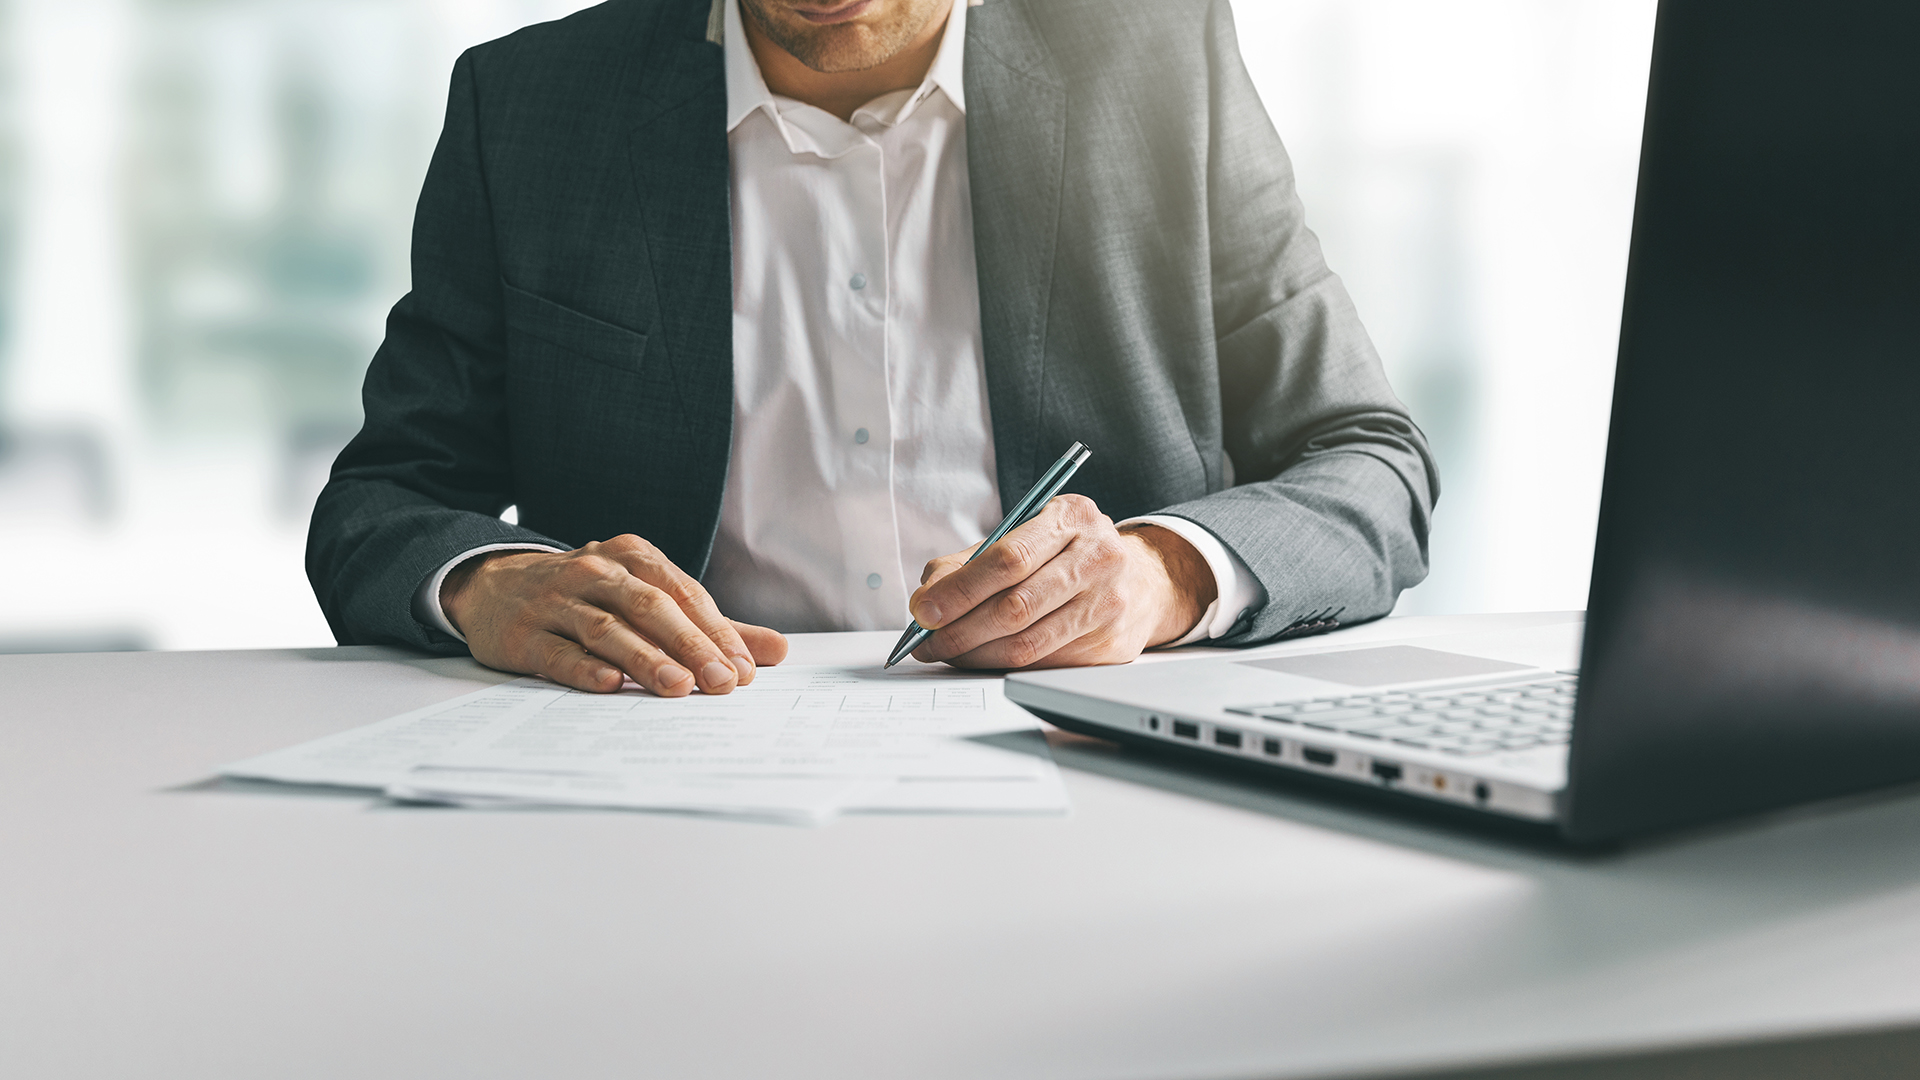 young man in suit writing business papers at desk